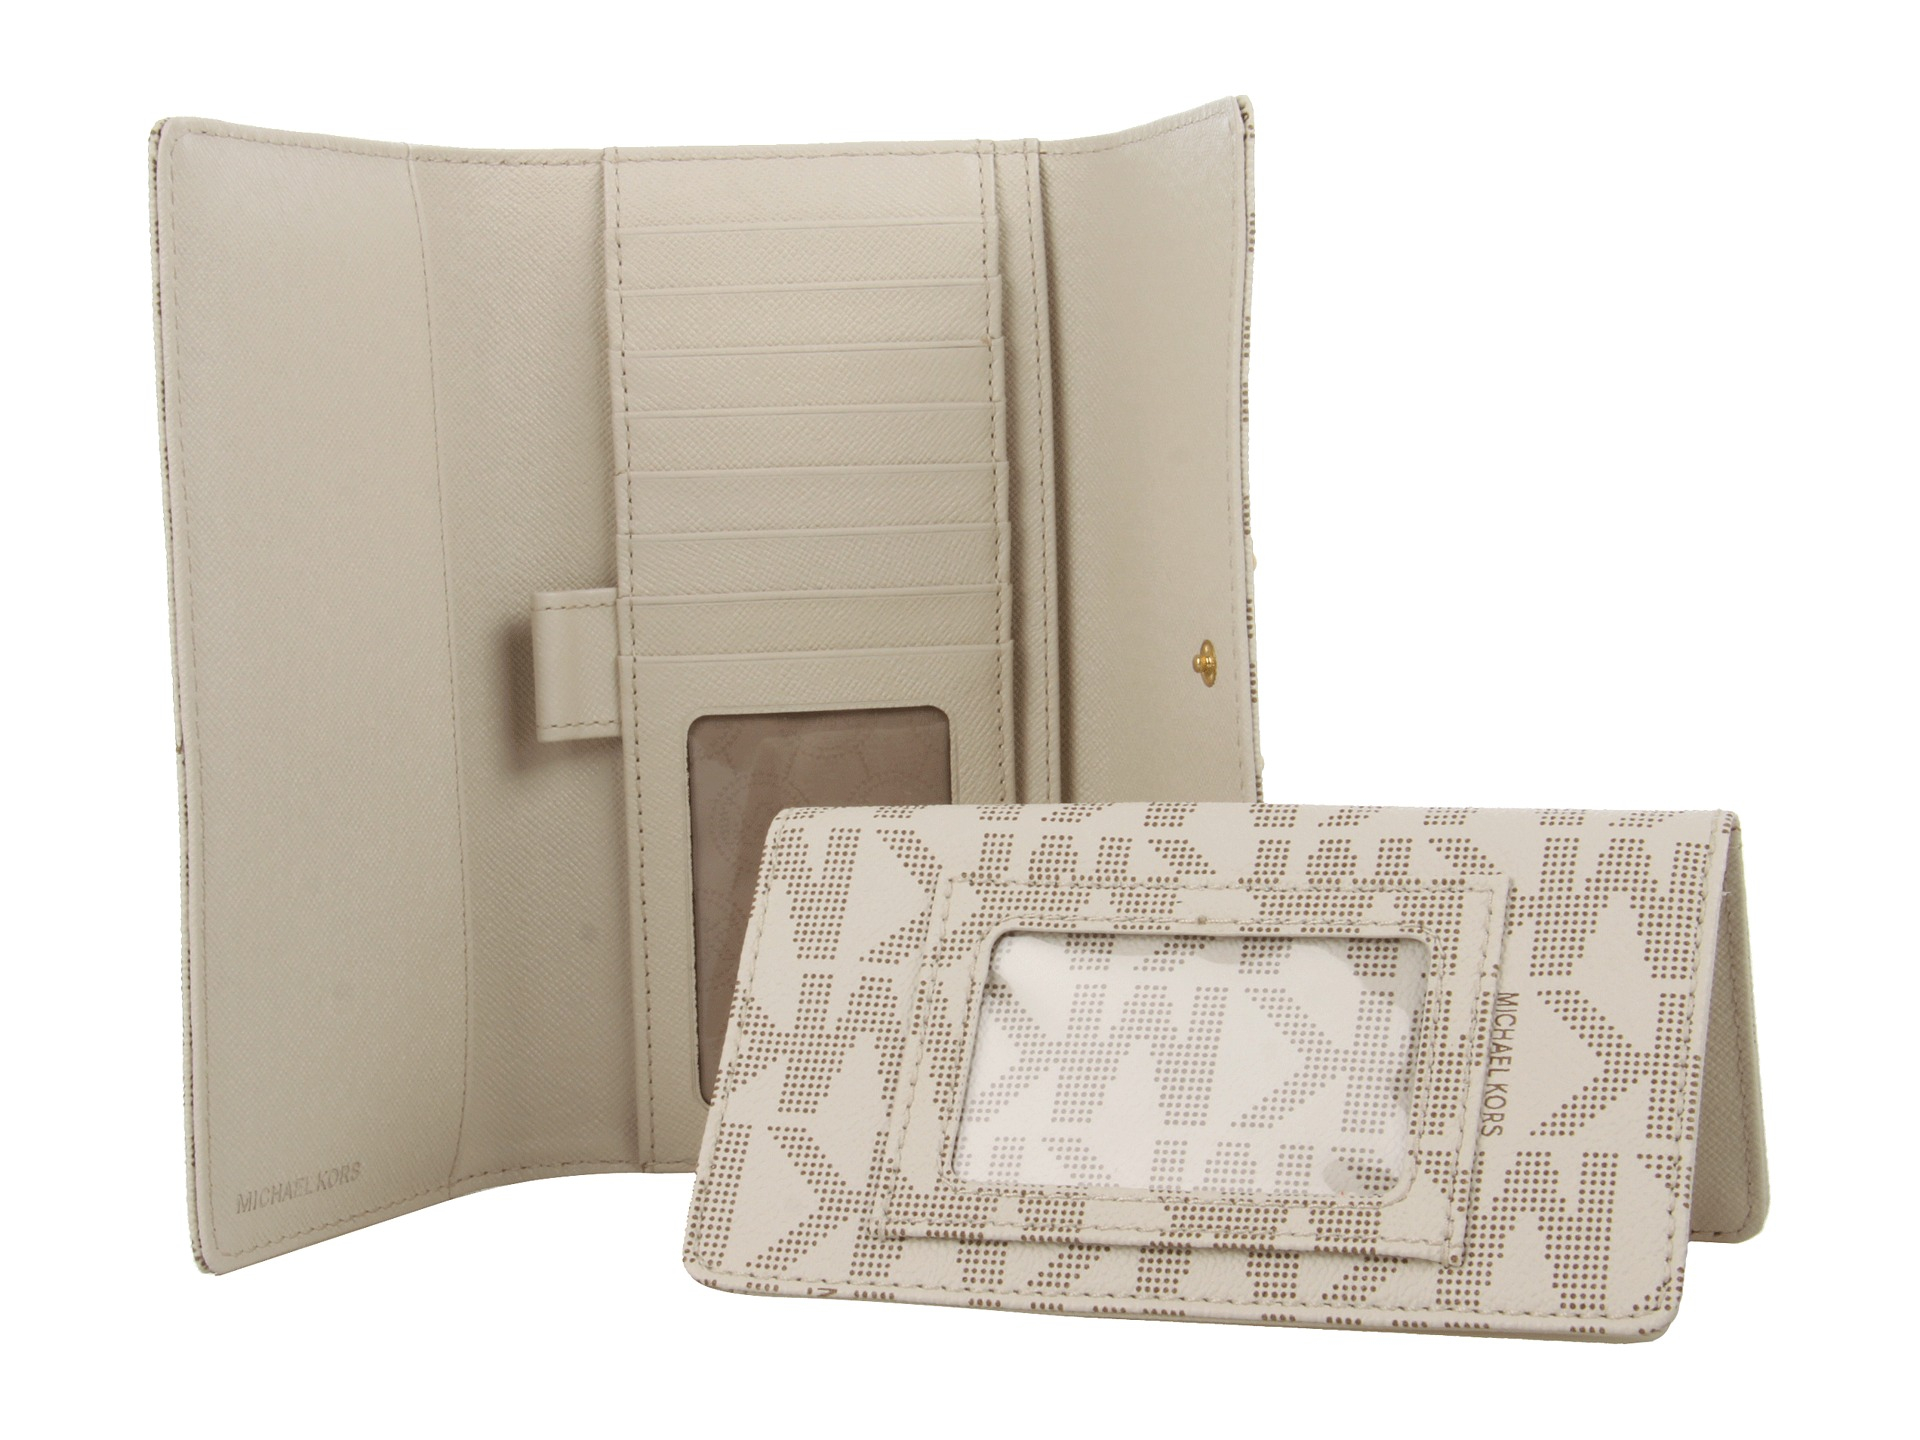 9a6f70a307382f MICHAEL Michael Kors Jet Set Checkbook Wallet in White - Lyst